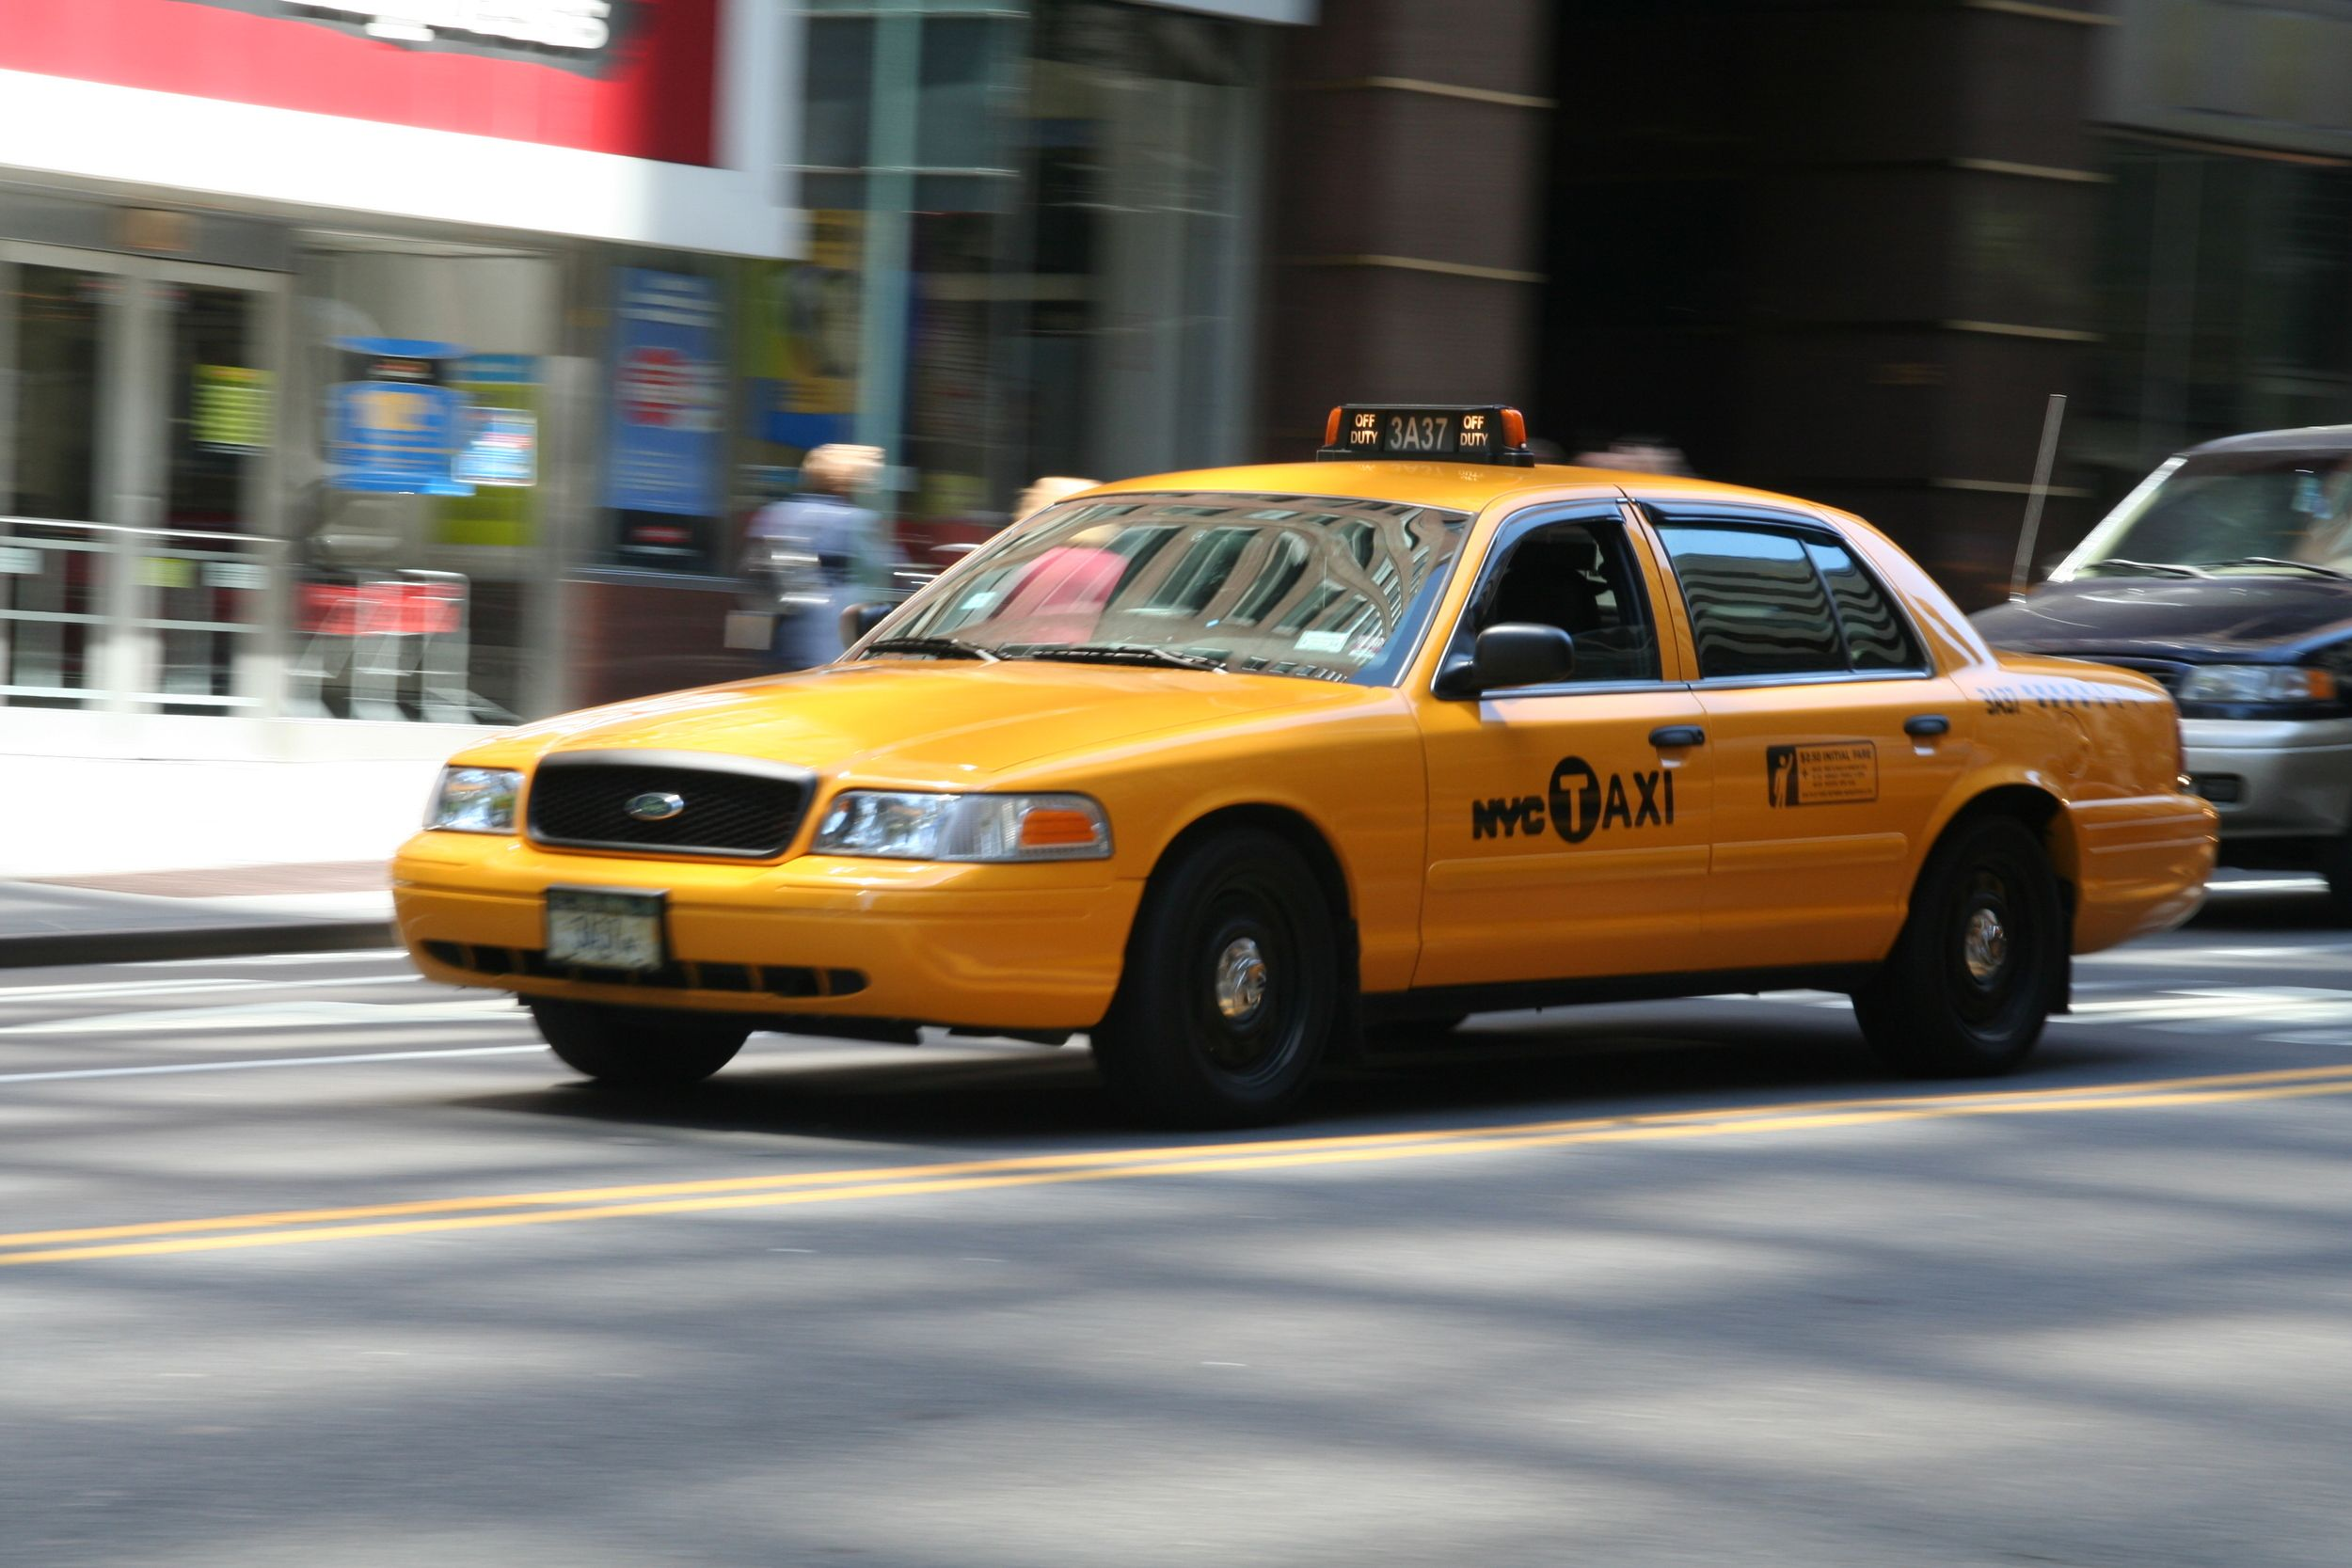 Metered Vehicle Cab Taxi New York Taxi Taxi Cab